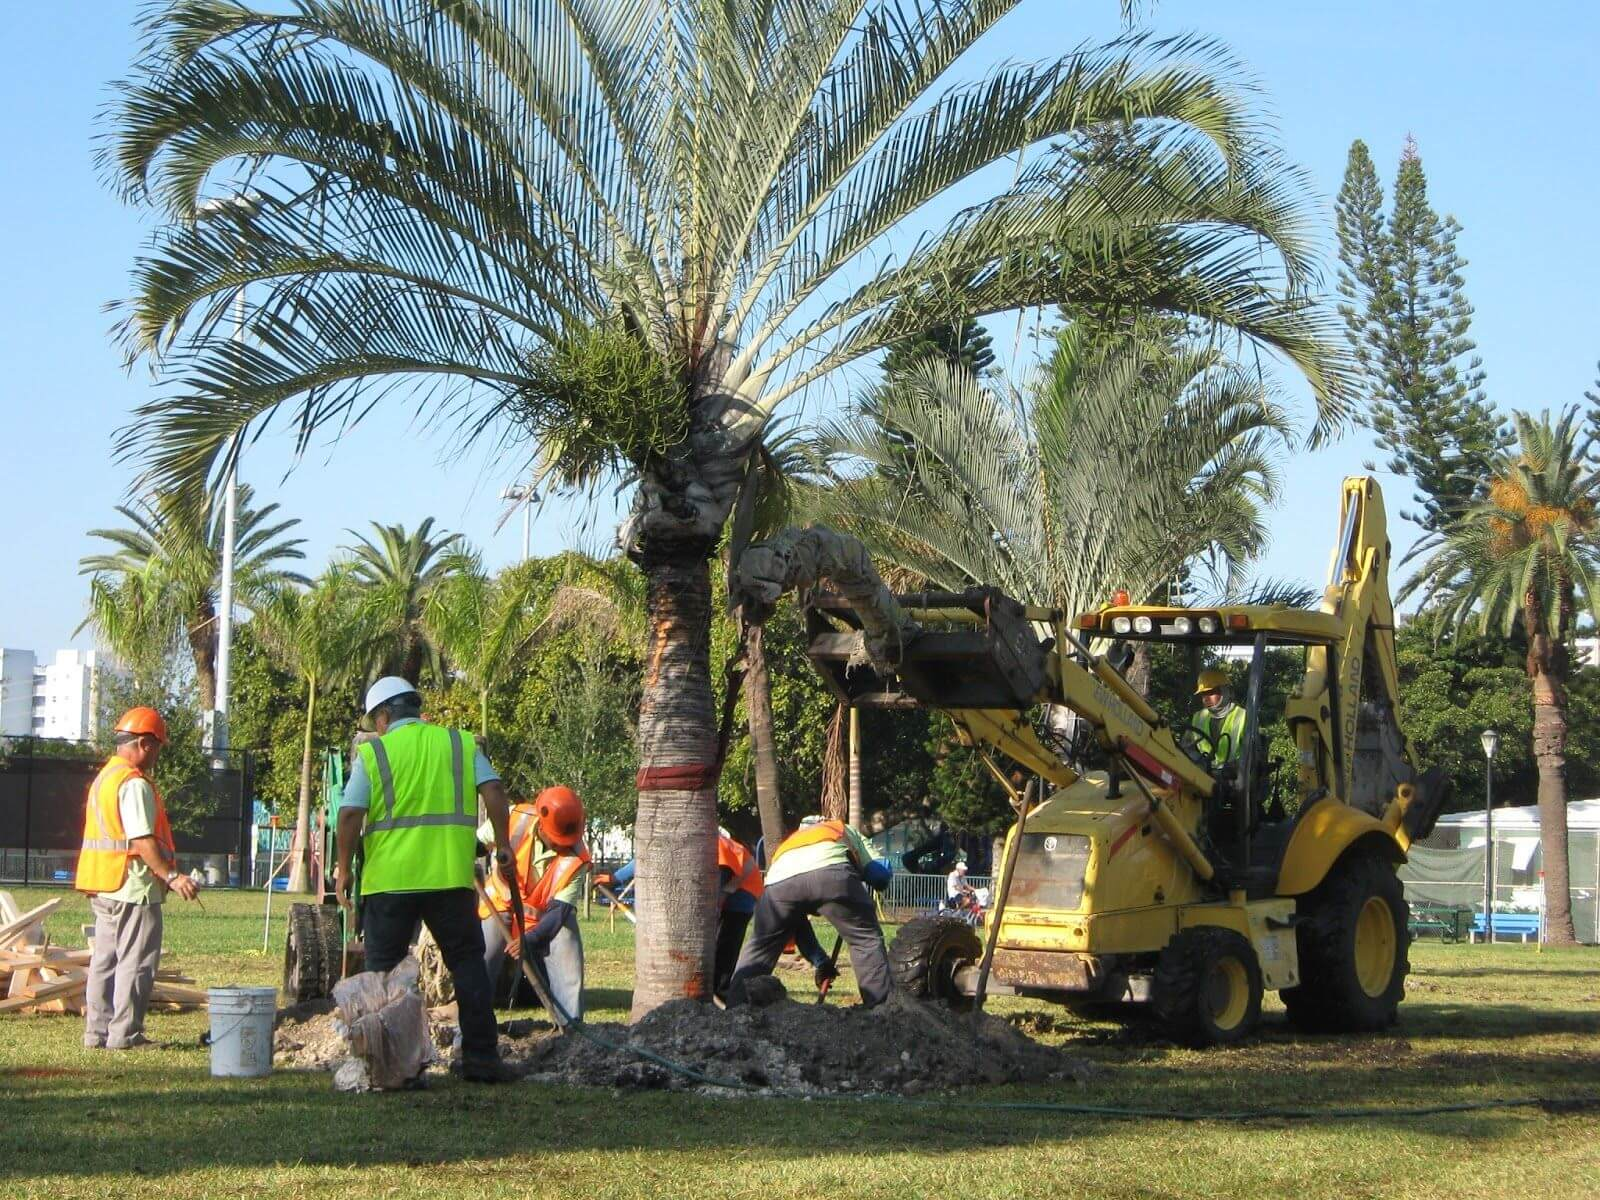 Palm Tree Trimming & Palm Tree Removal-Delray Beach Tree Trimming and Tree Removal Services-We Offer Tree Trimming Services, Tree Removal, Tree Pruning, Tree Cutting, Residential and Commercial Tree Trimming Services, Storm Damage, Emergency Tree Removal, Land Clearing, Tree Companies, Tree Care Service, Stump Grinding, and we're the Best Tree Trimming Company Near You Guaranteed!